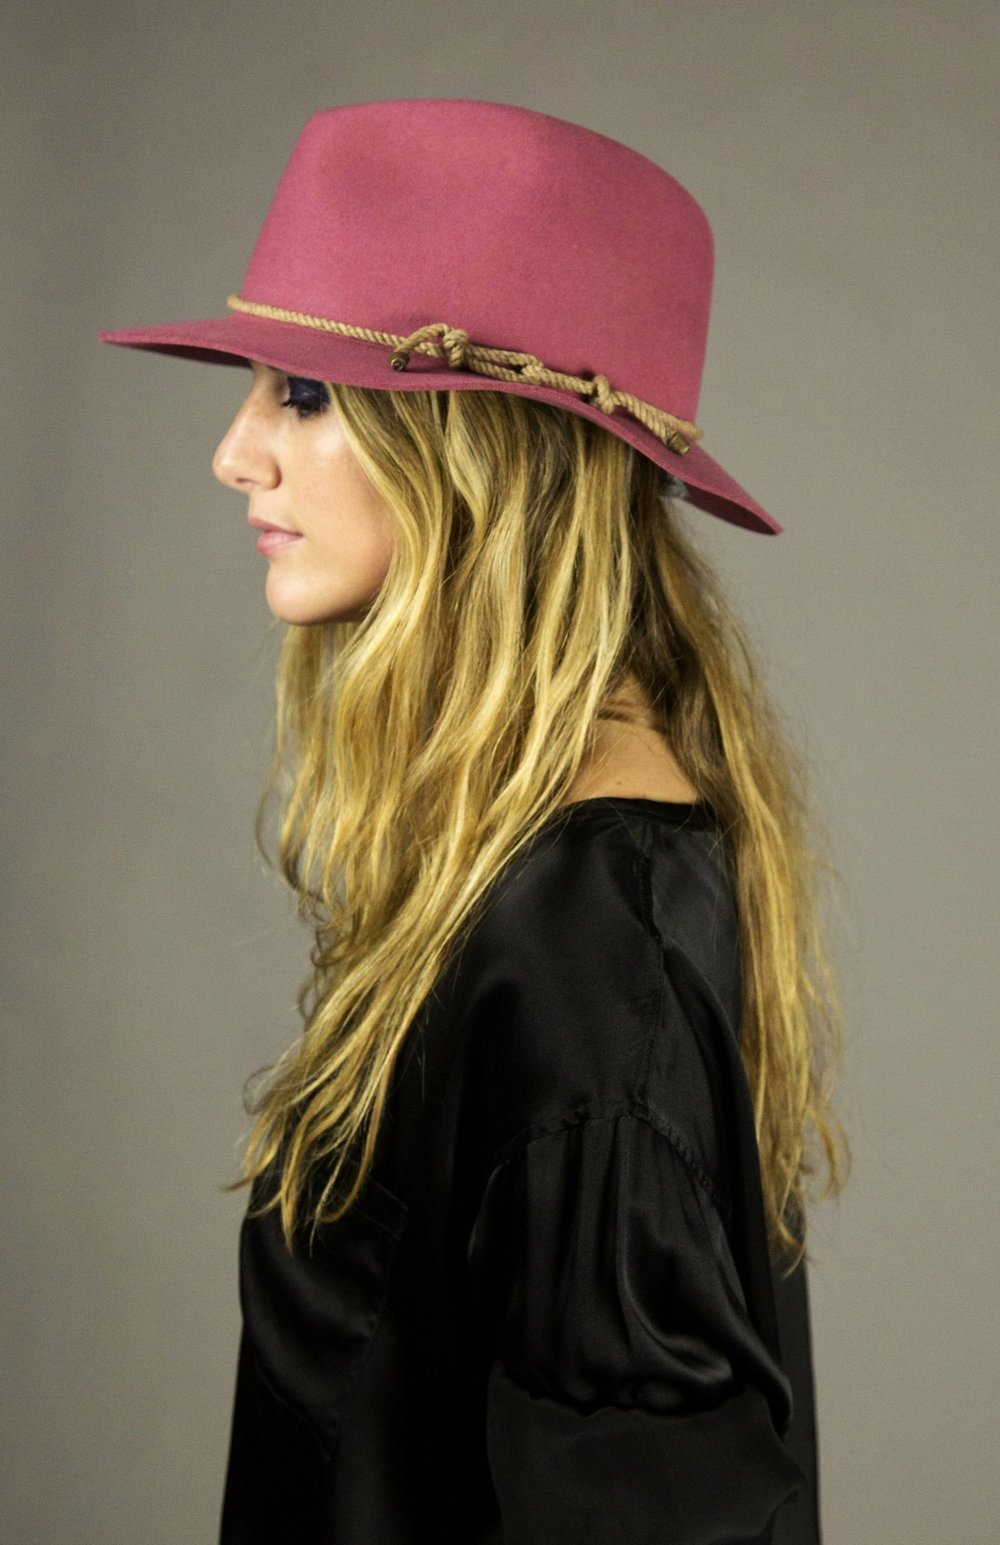 hat 1 pink  felted fedora with signature natural melange rope detail and brass metal tips. made in collaboration with bollman hats, the oldest hat manufacturer in america.  sizes 1-2  100% felted wool  100% cotton interior band in our signature khaki twill